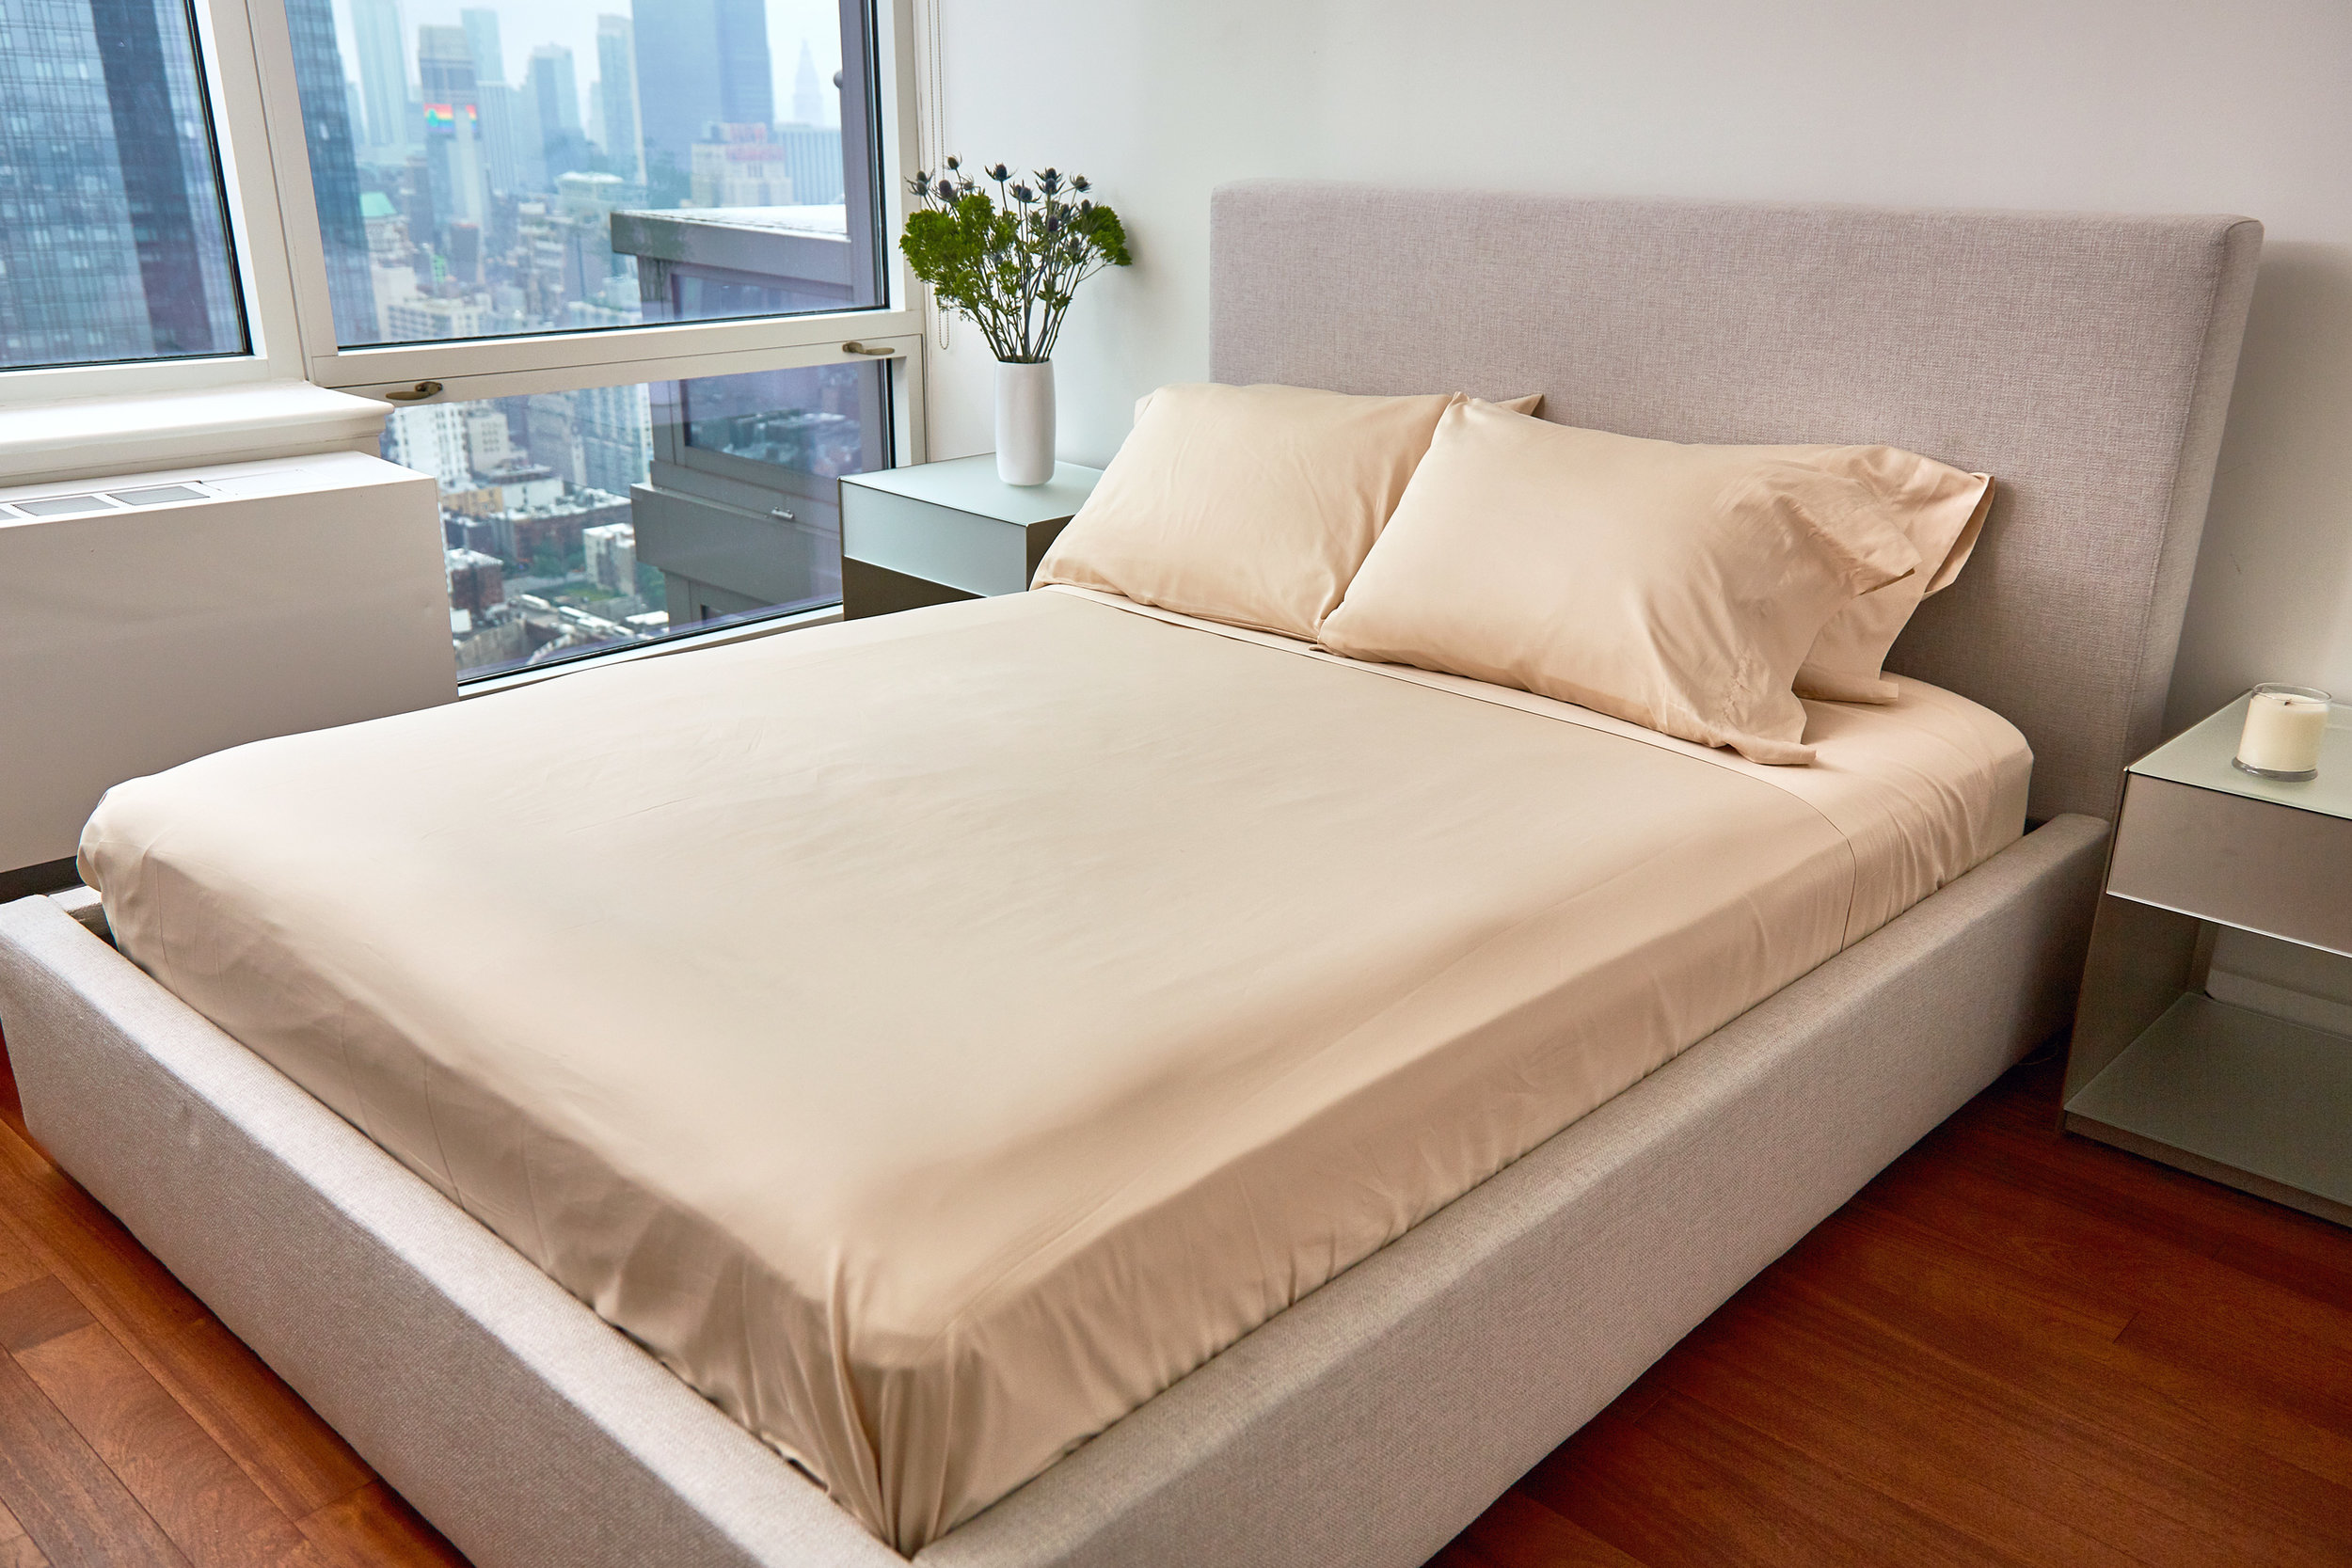 UN_FARM_TO_HOME_BED_SHEETS_SAND1320_XRET.jpg